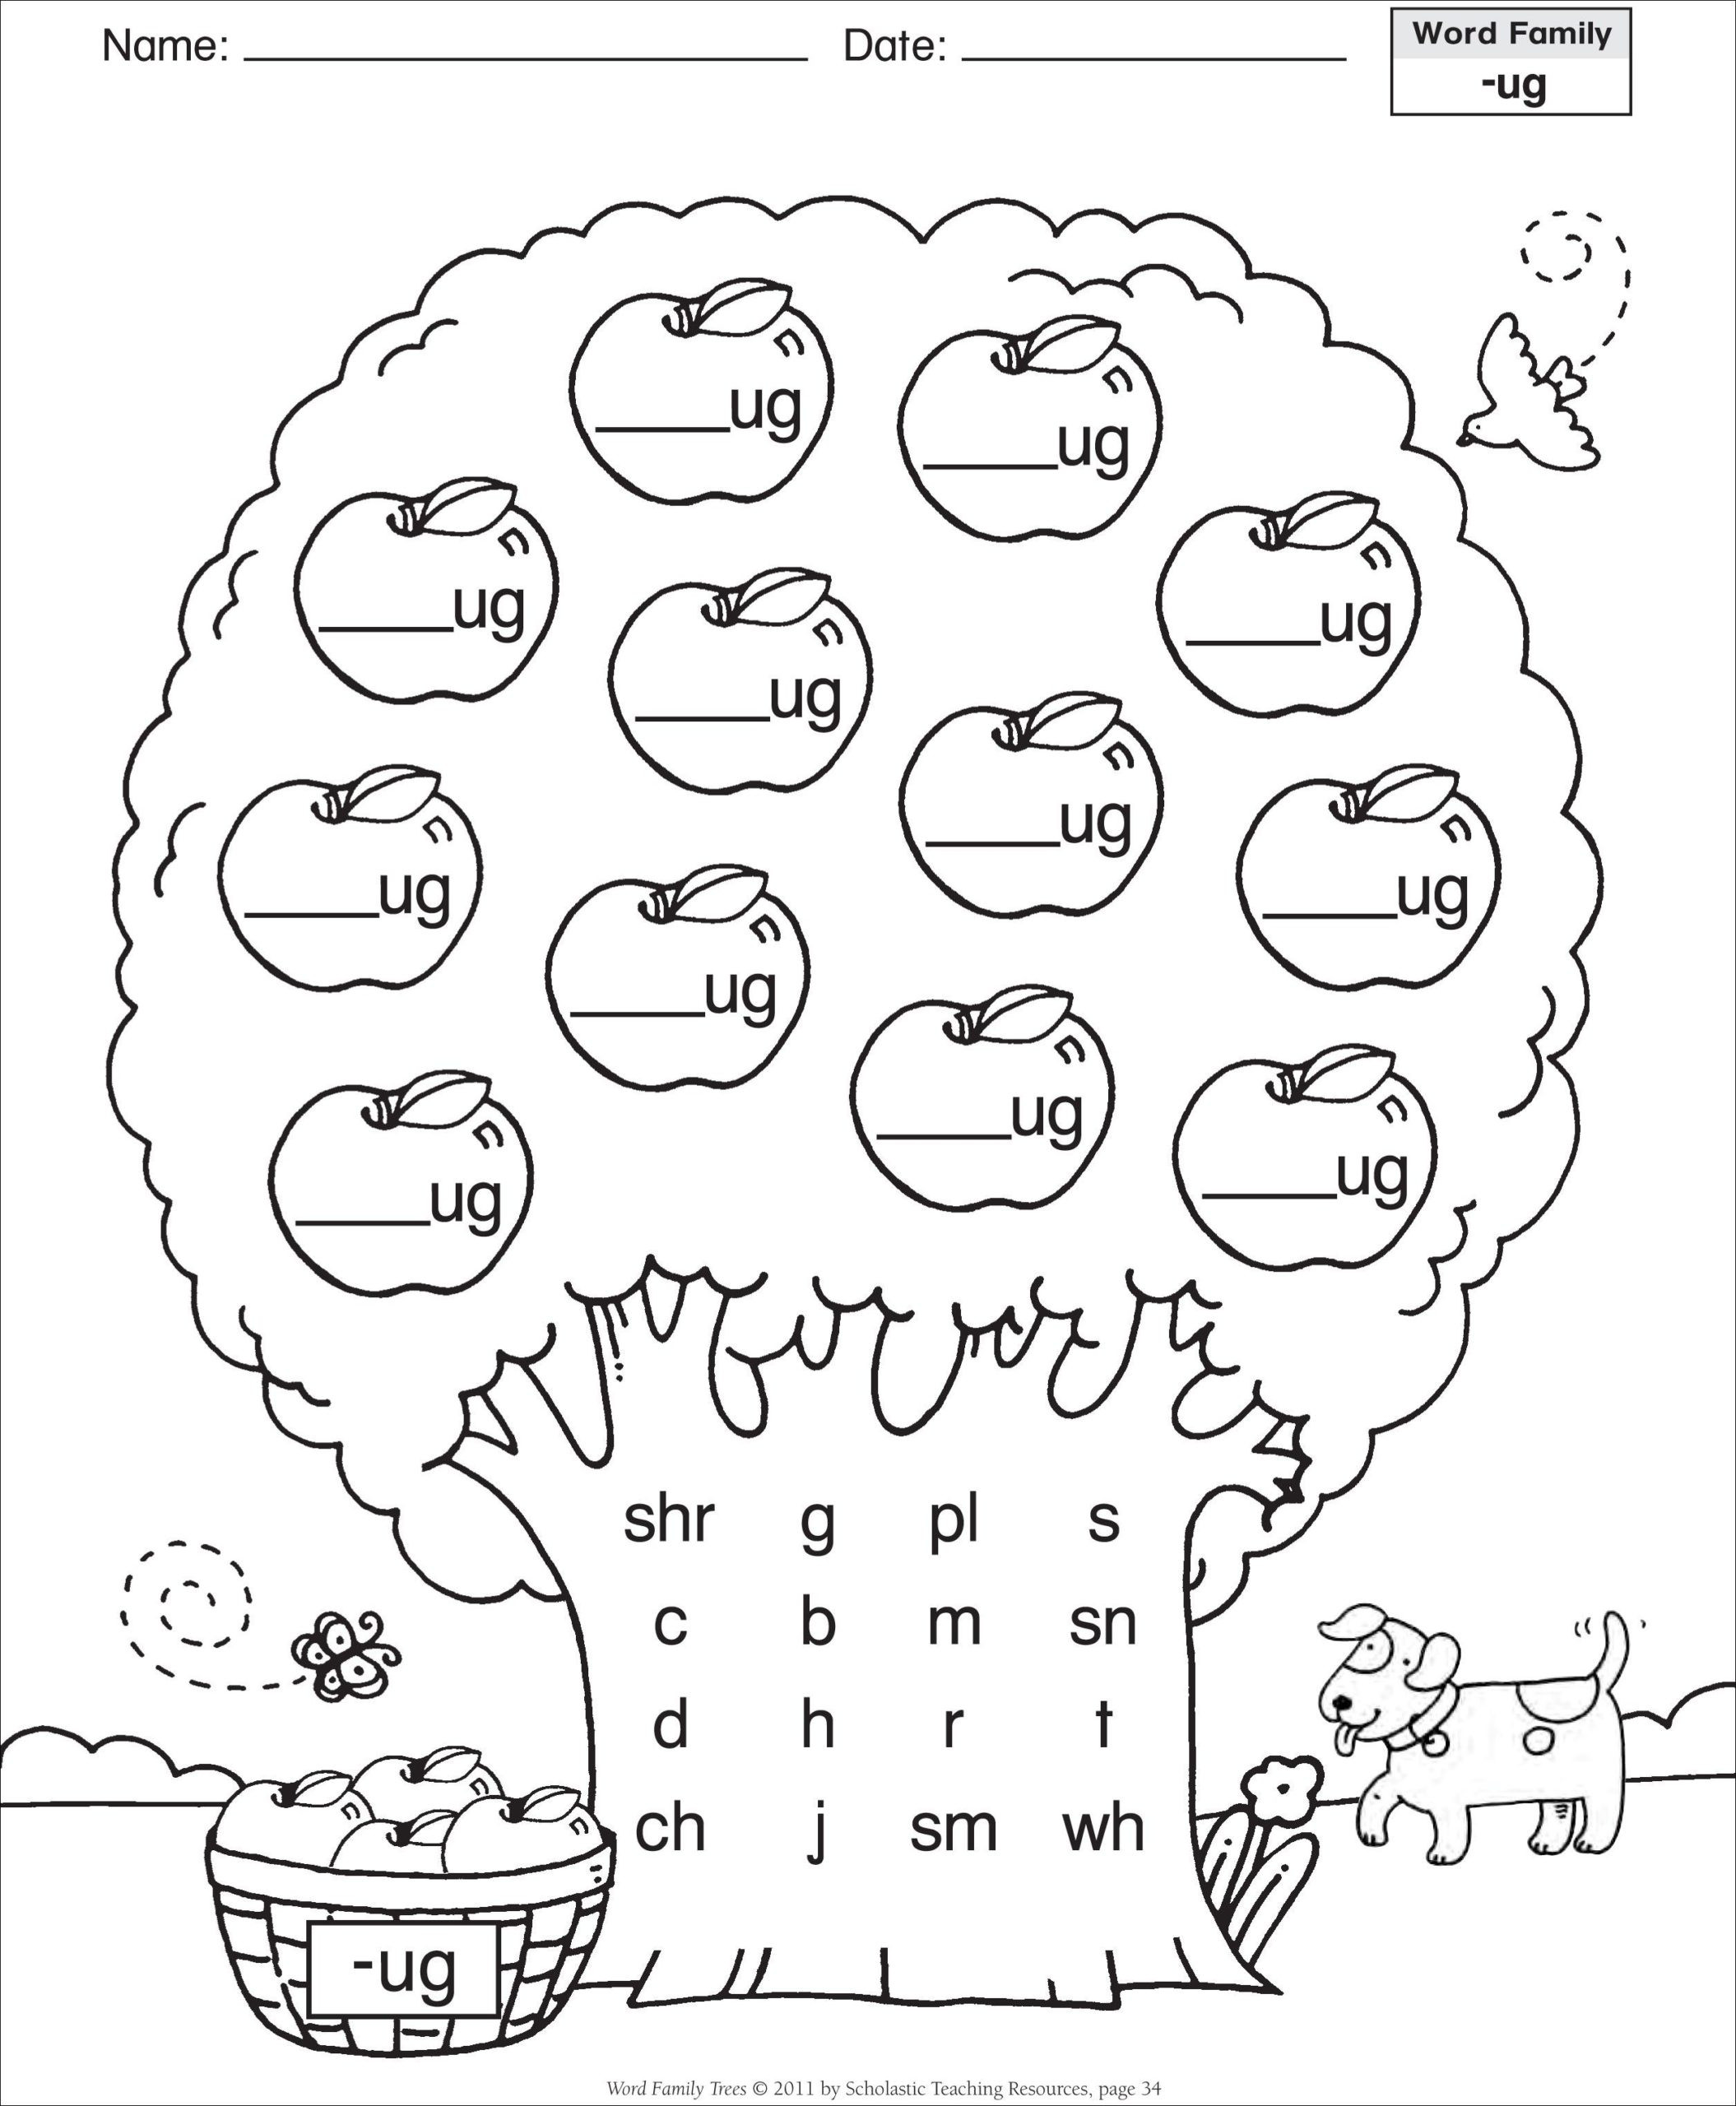 Short Vowel Worksheets 1st Grade Short Vowel Ug Word Family Tree Families Reading Stem